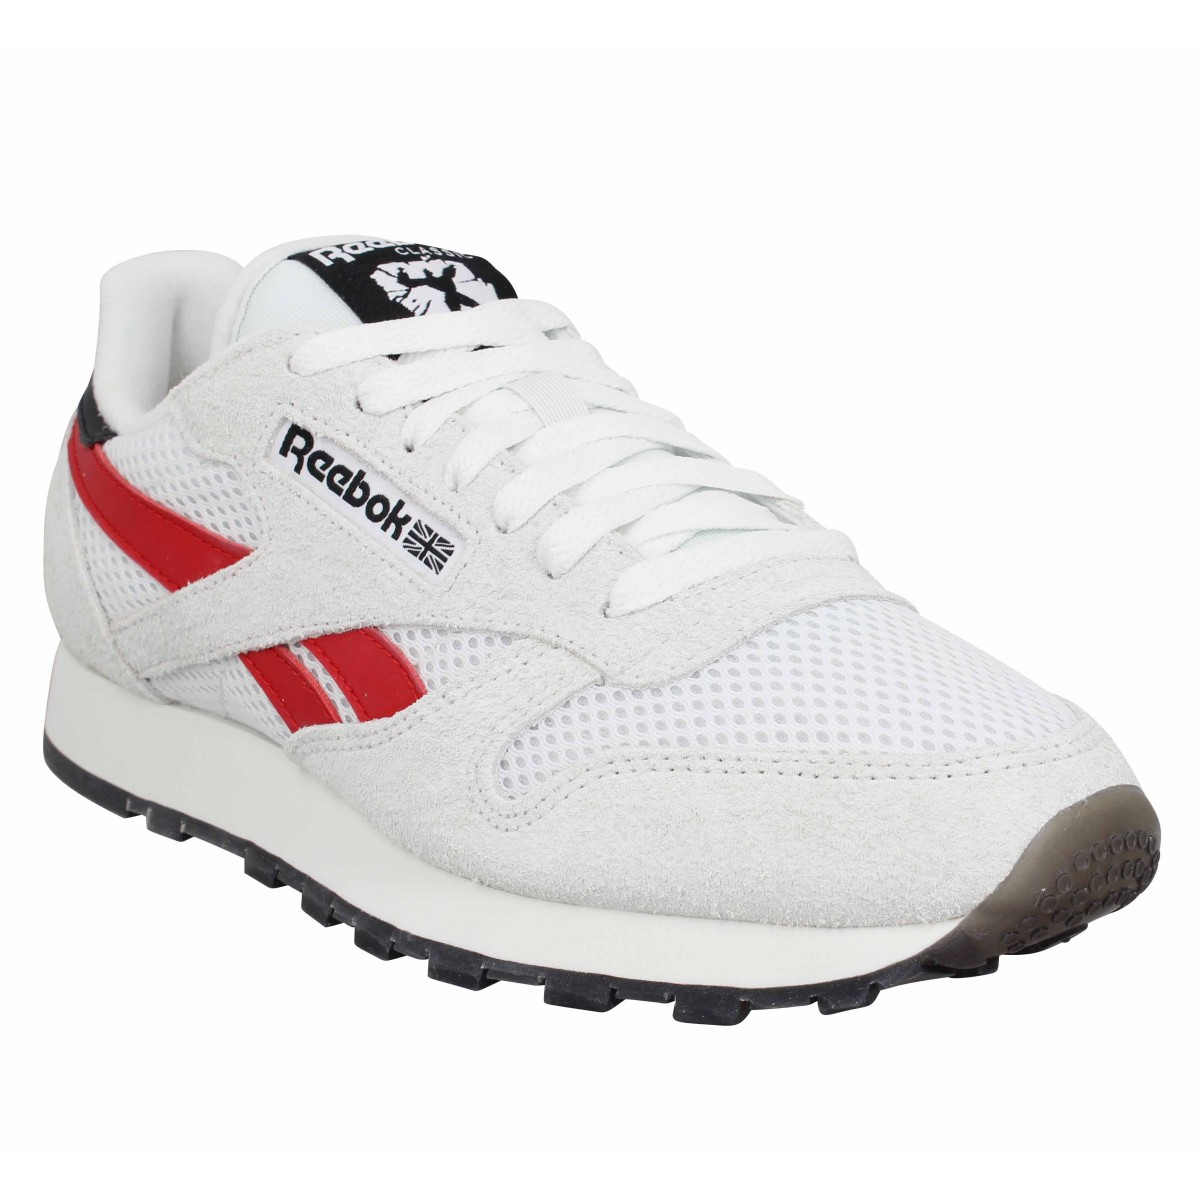 Baskets REEBOK X HUMAN RIGHTS NOW! Classic Leather velours toile Homme Blanc Vert Rouge